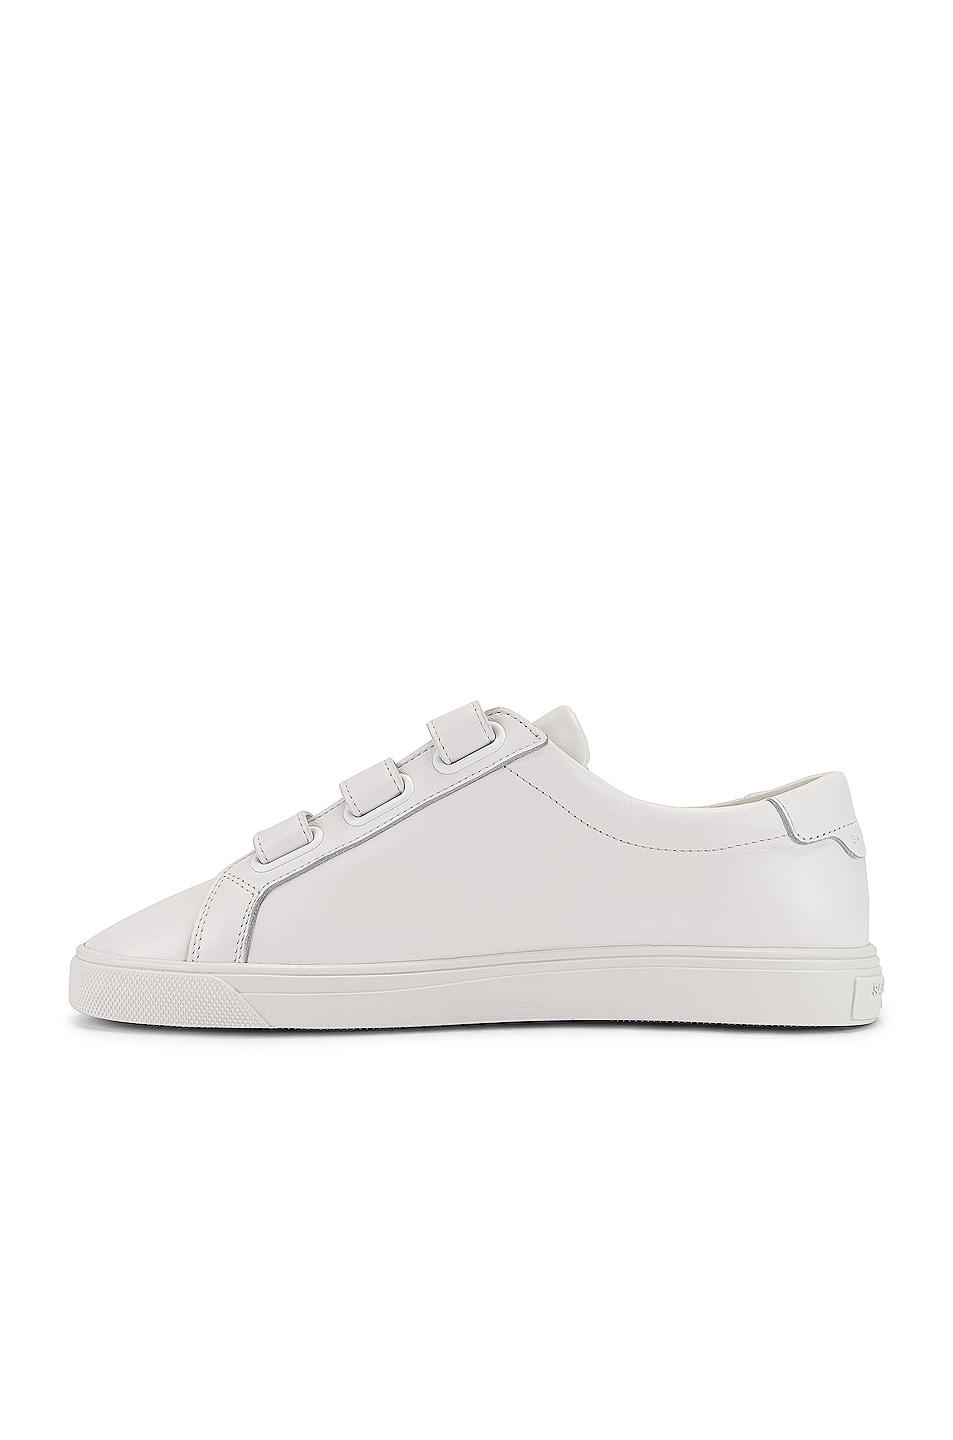 Image 5 of Saint Laurent Andy Velcro Strap Low Top Sneakers in White